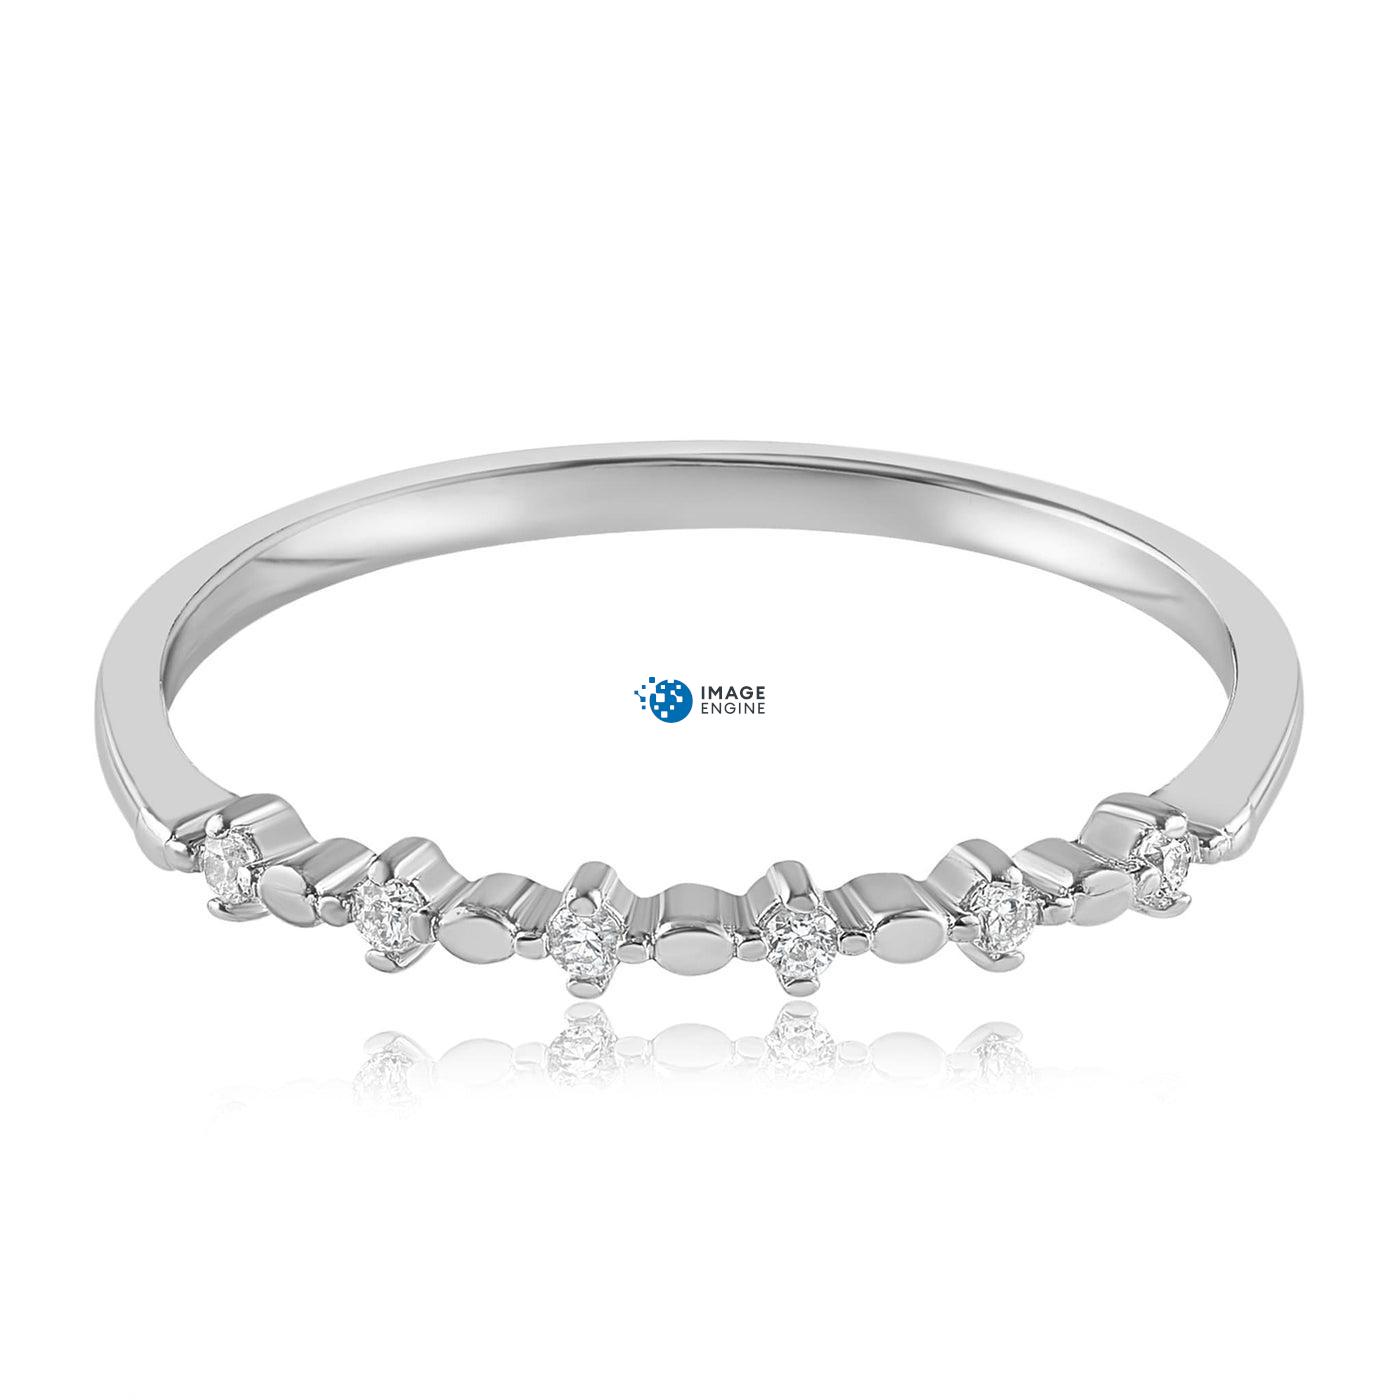 Nicolette Stackable Ring - Front View Facing Down - 925 Sterling Silver